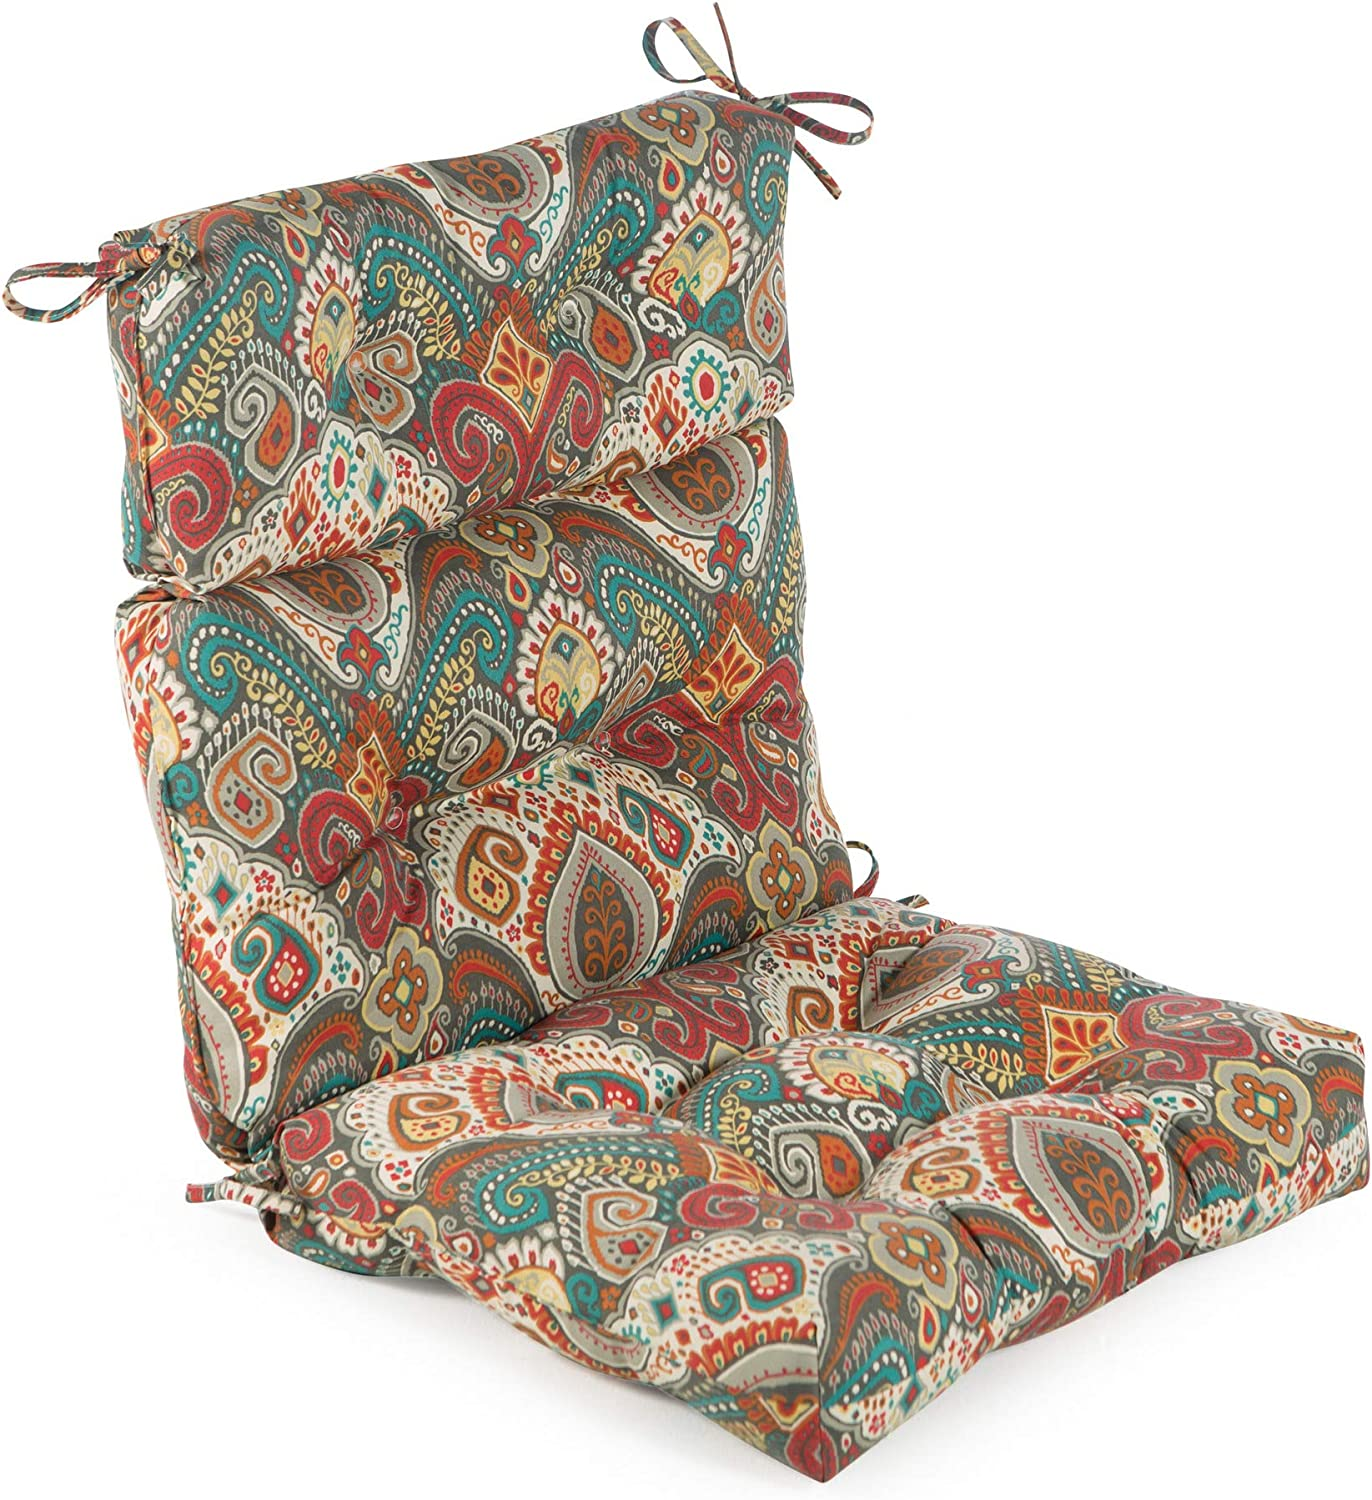 Greendale Home Fashions AZ4809-ASBURYPARK Painted Desert 44'' x 22'' Outdoor Seat/Back Chair Cushion